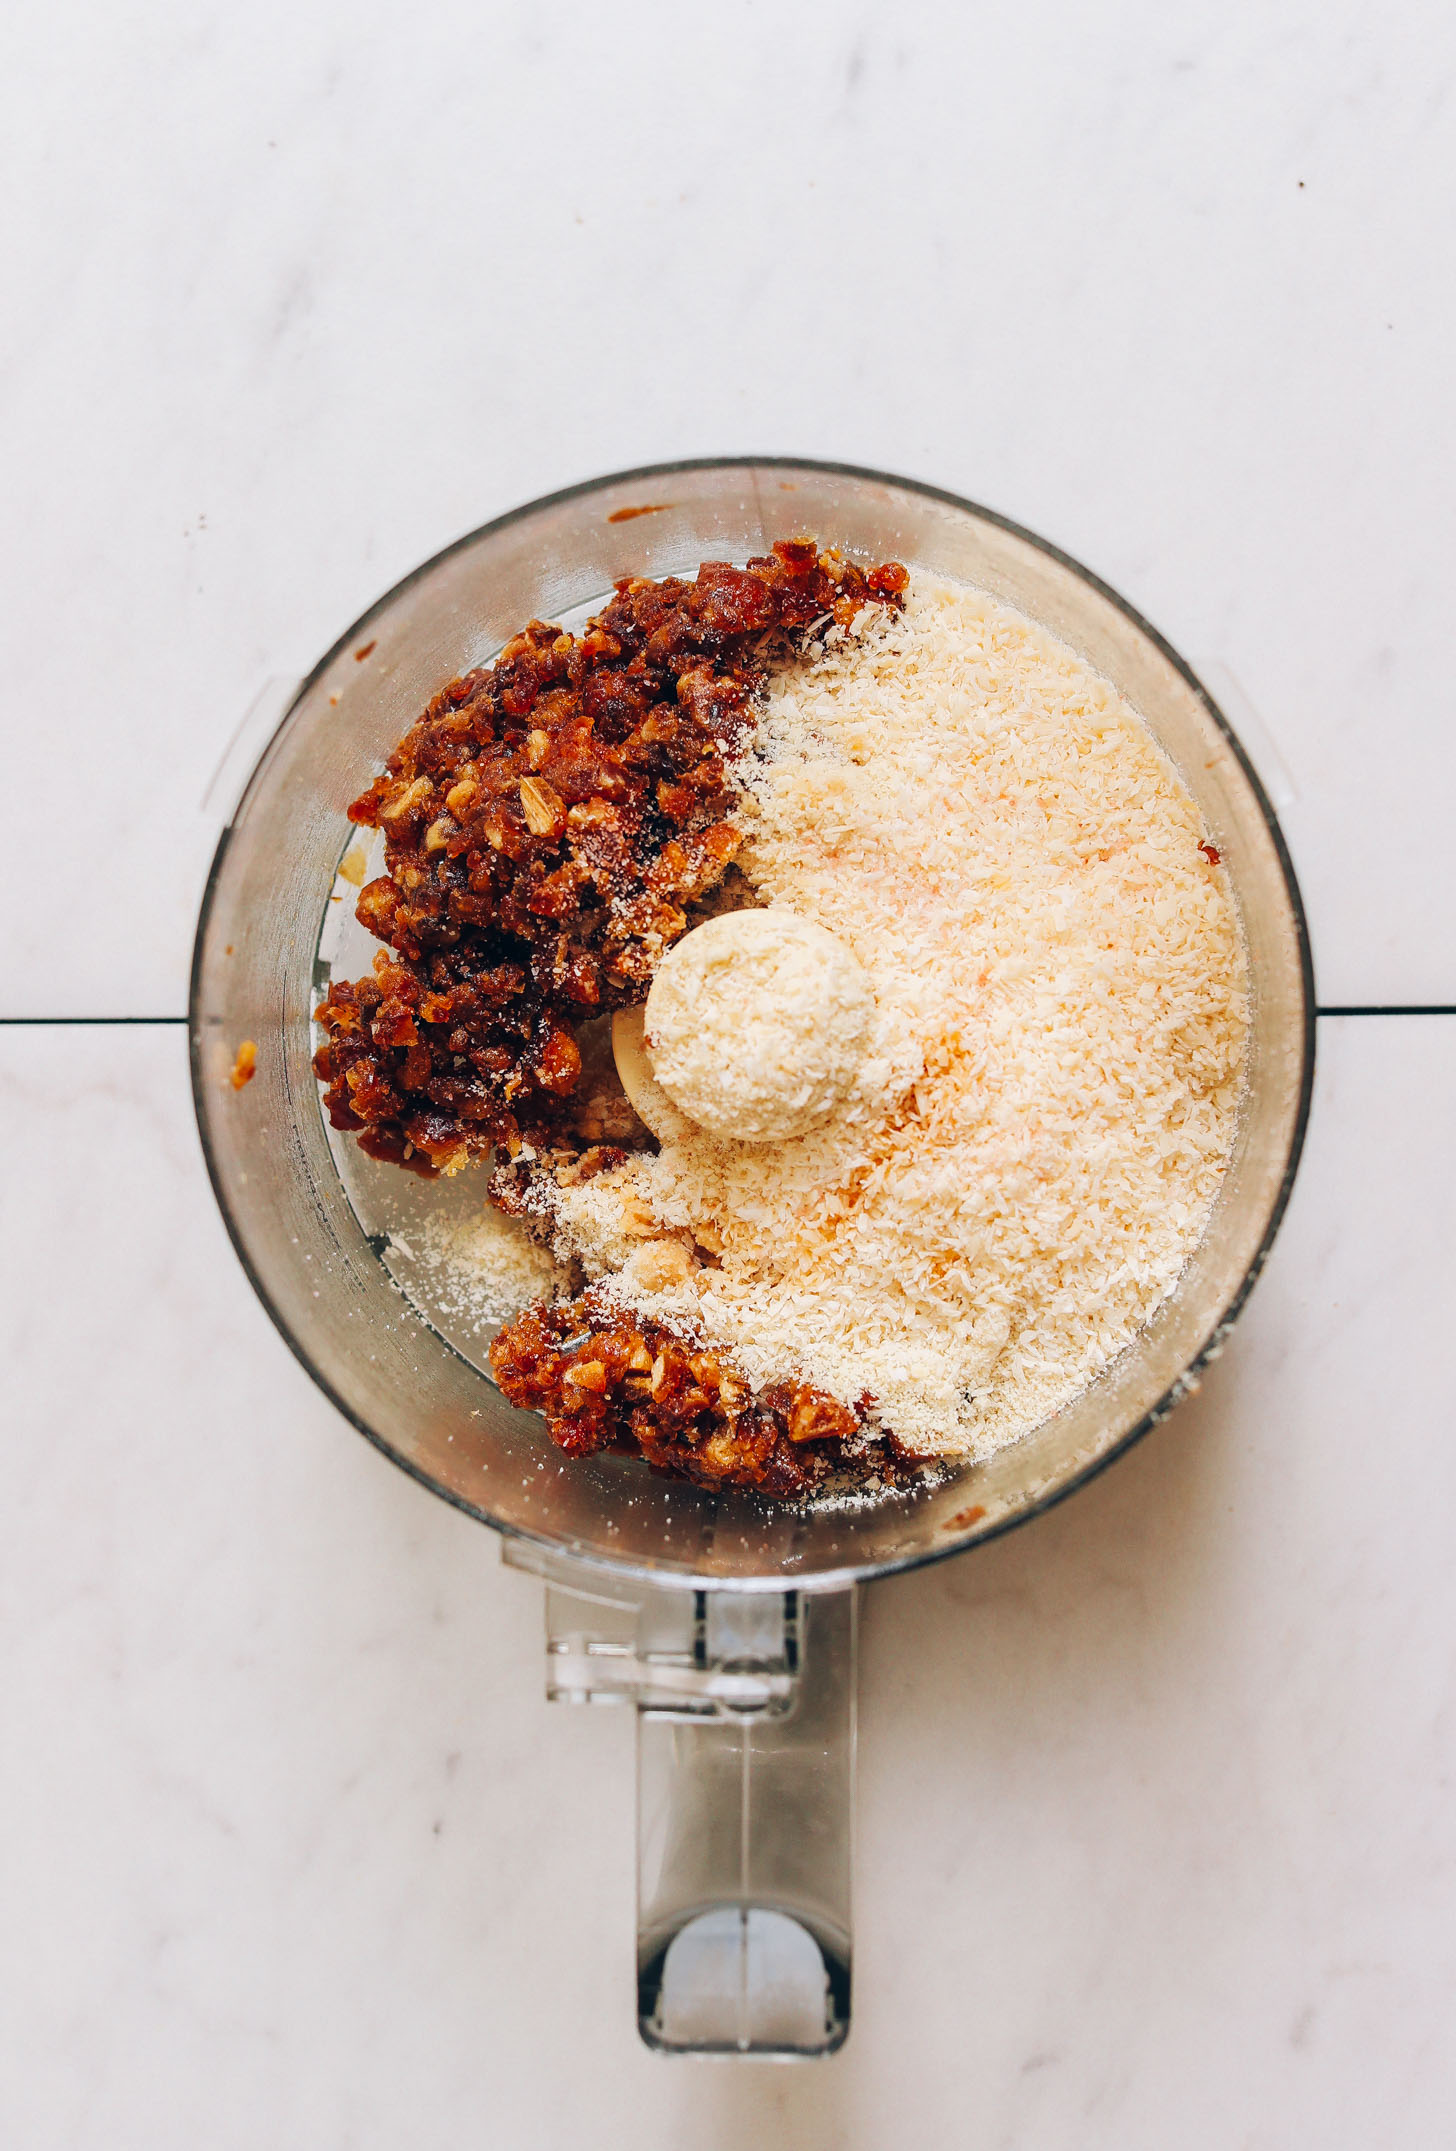 Food processor of almond flour, desiccated coconut, and chopped pitted dates